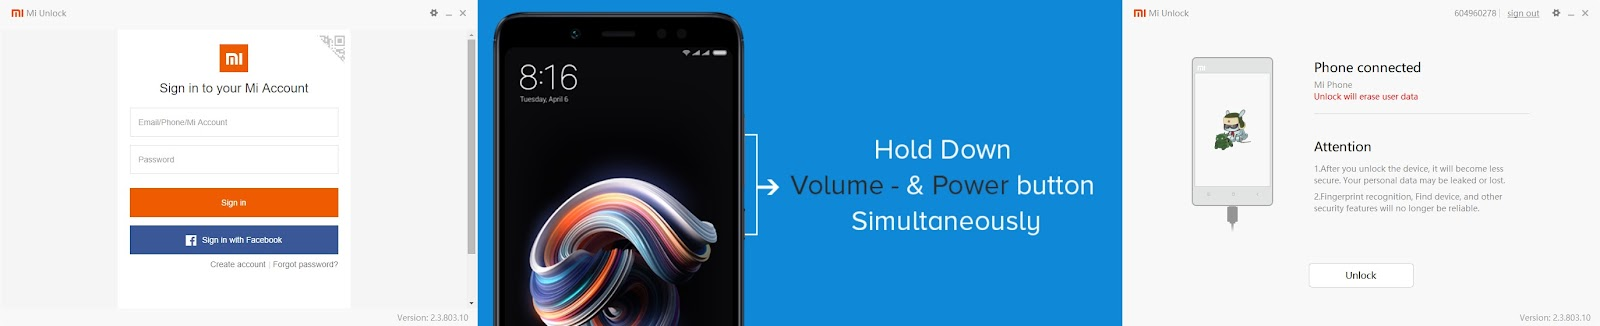 How to Unlock the Bootloader of your Mi Phones - Flashing